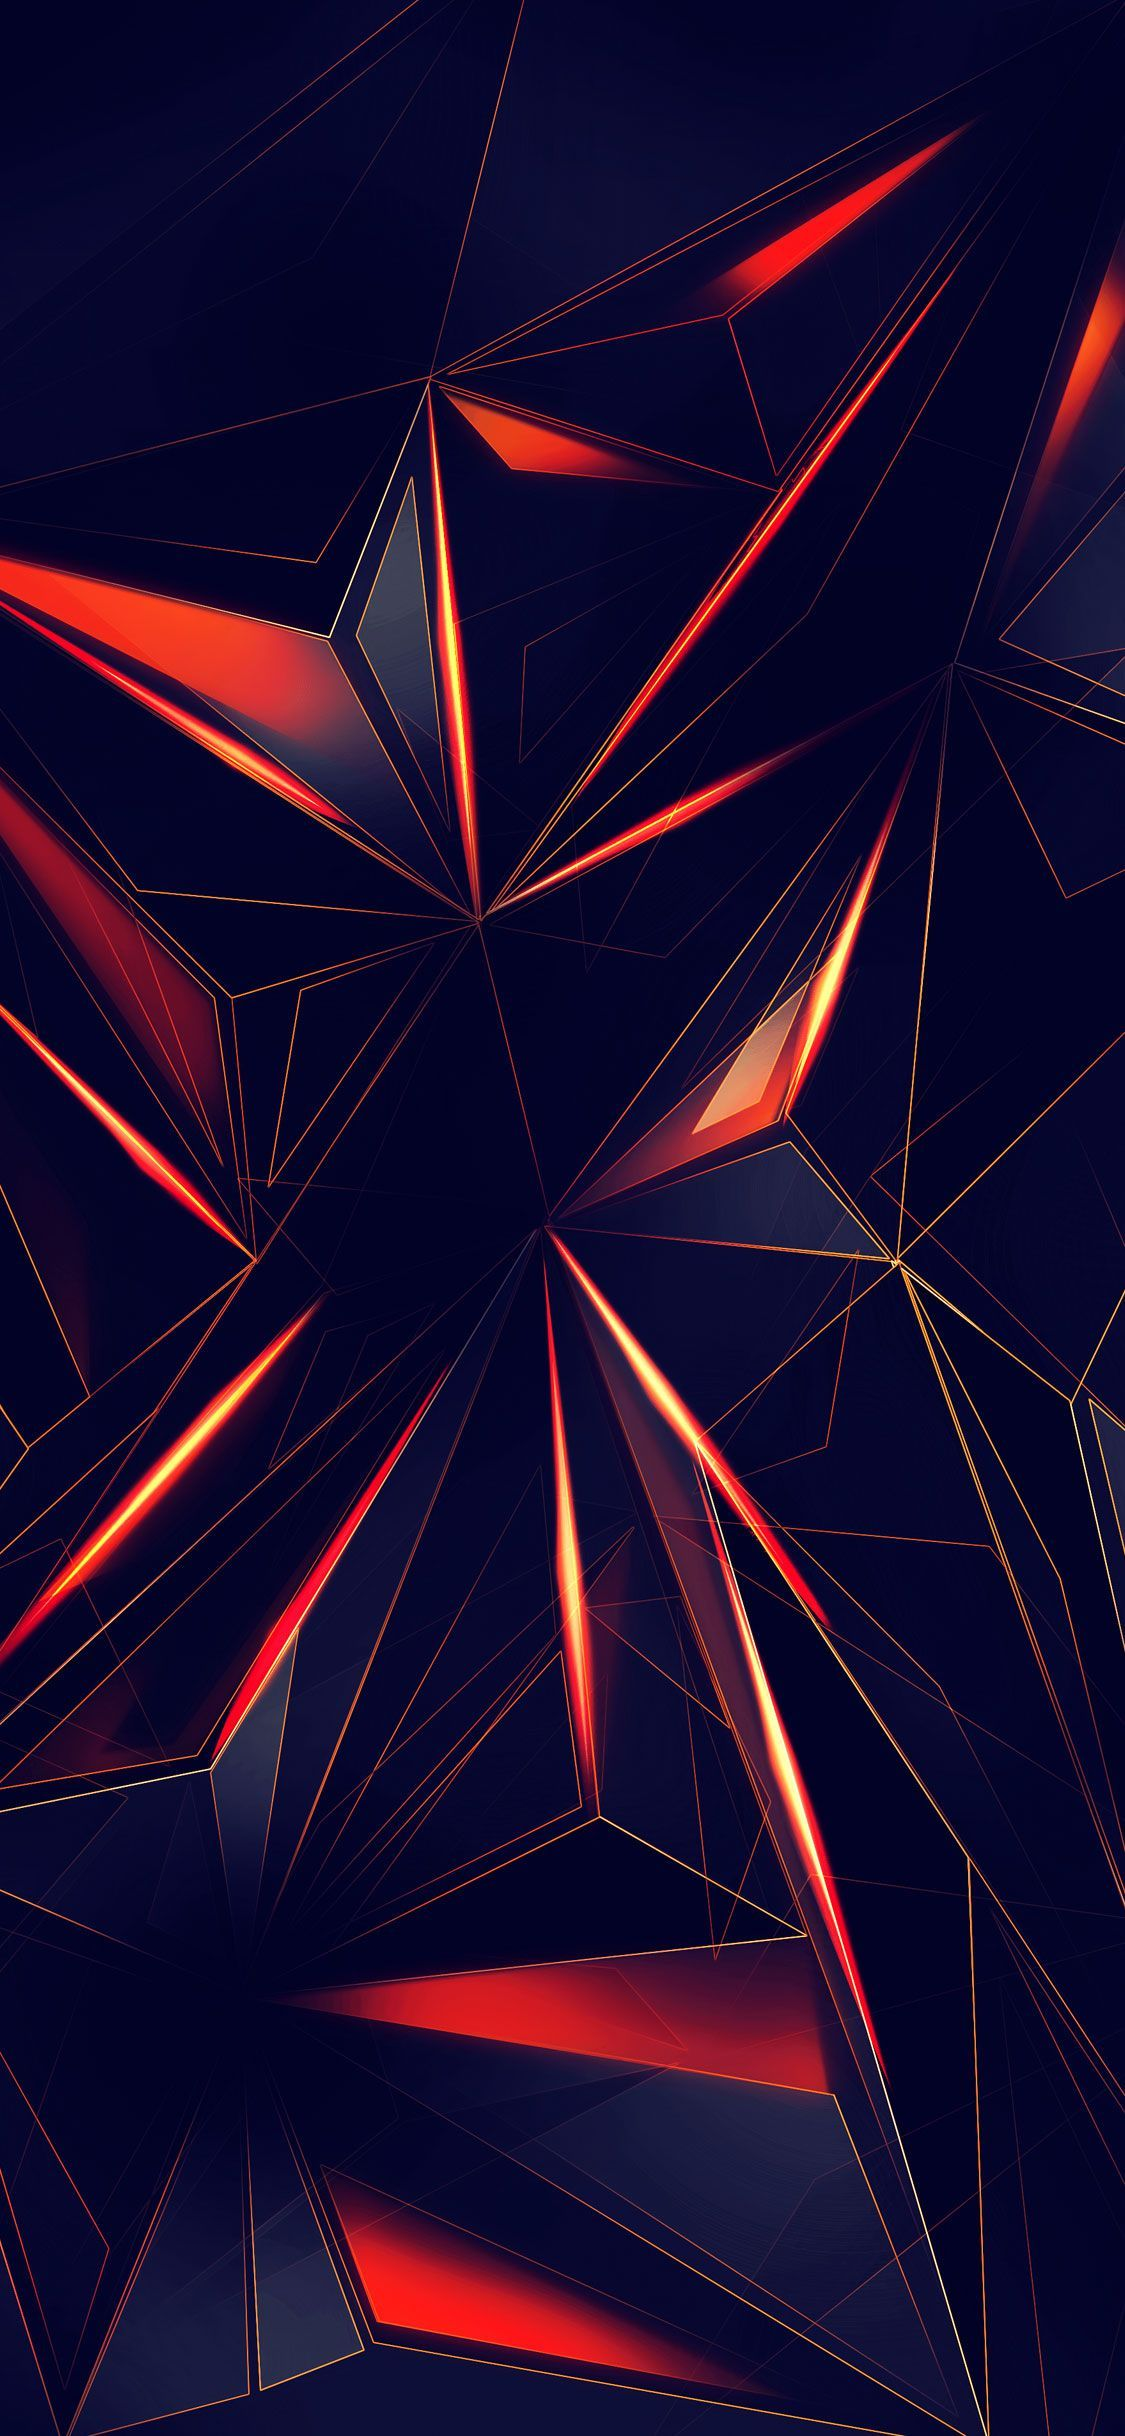 Iphone 11 Wallpaper Ios Abstract Design 4k Hd Download Free Hd